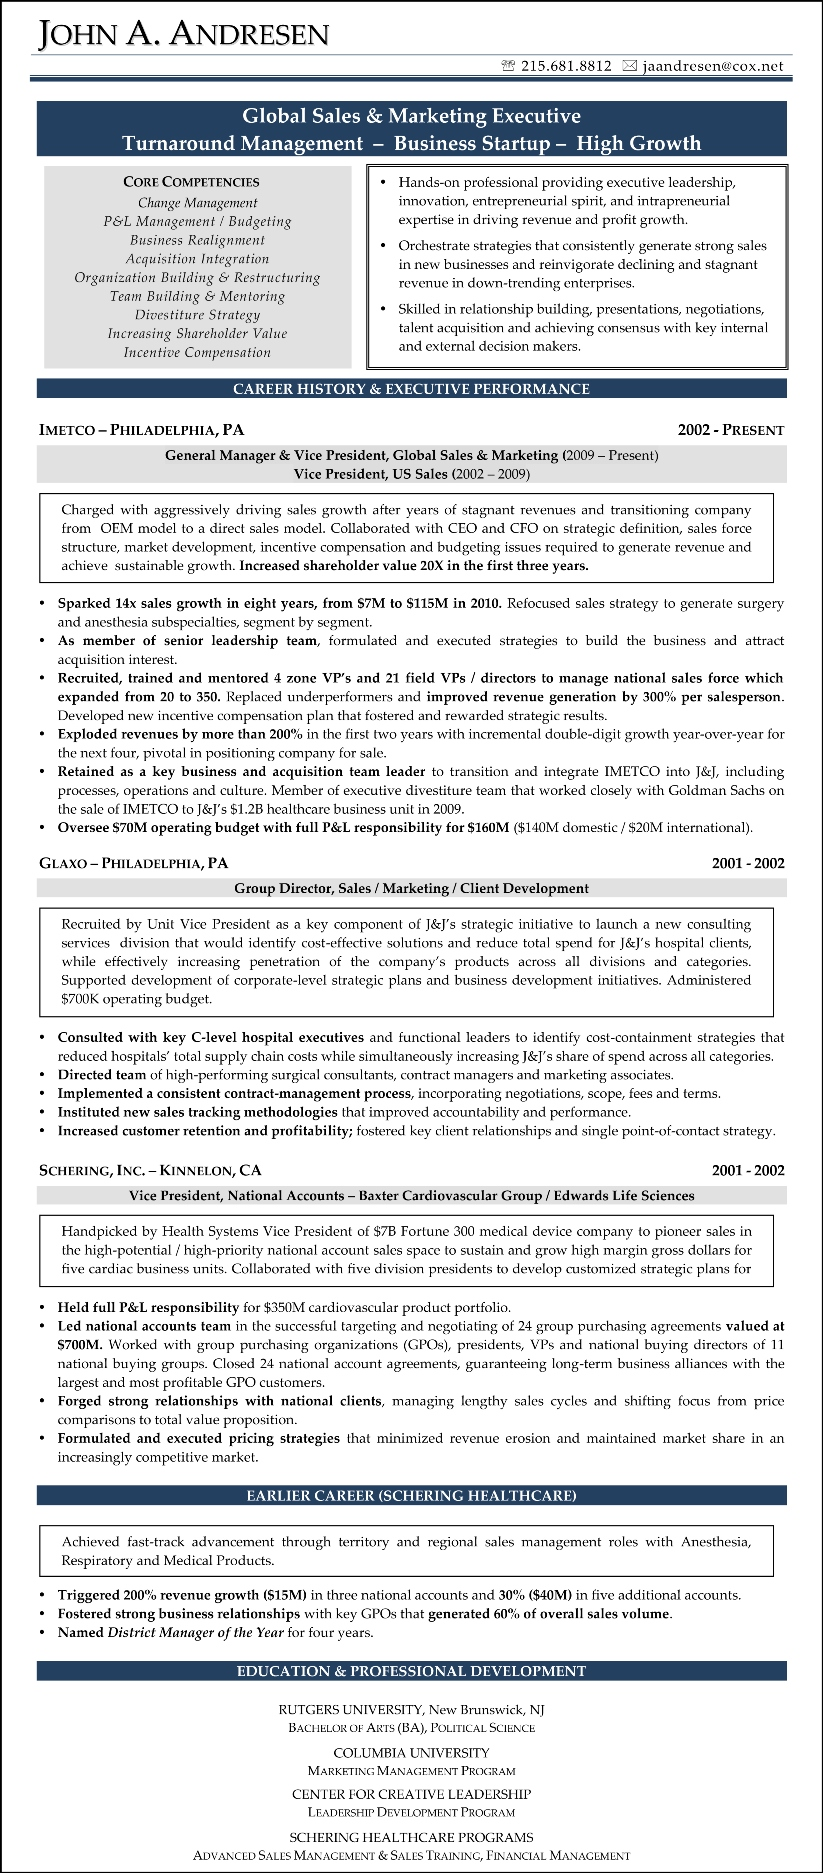 Sample Resume - John Andresen (Sales and Marketing)